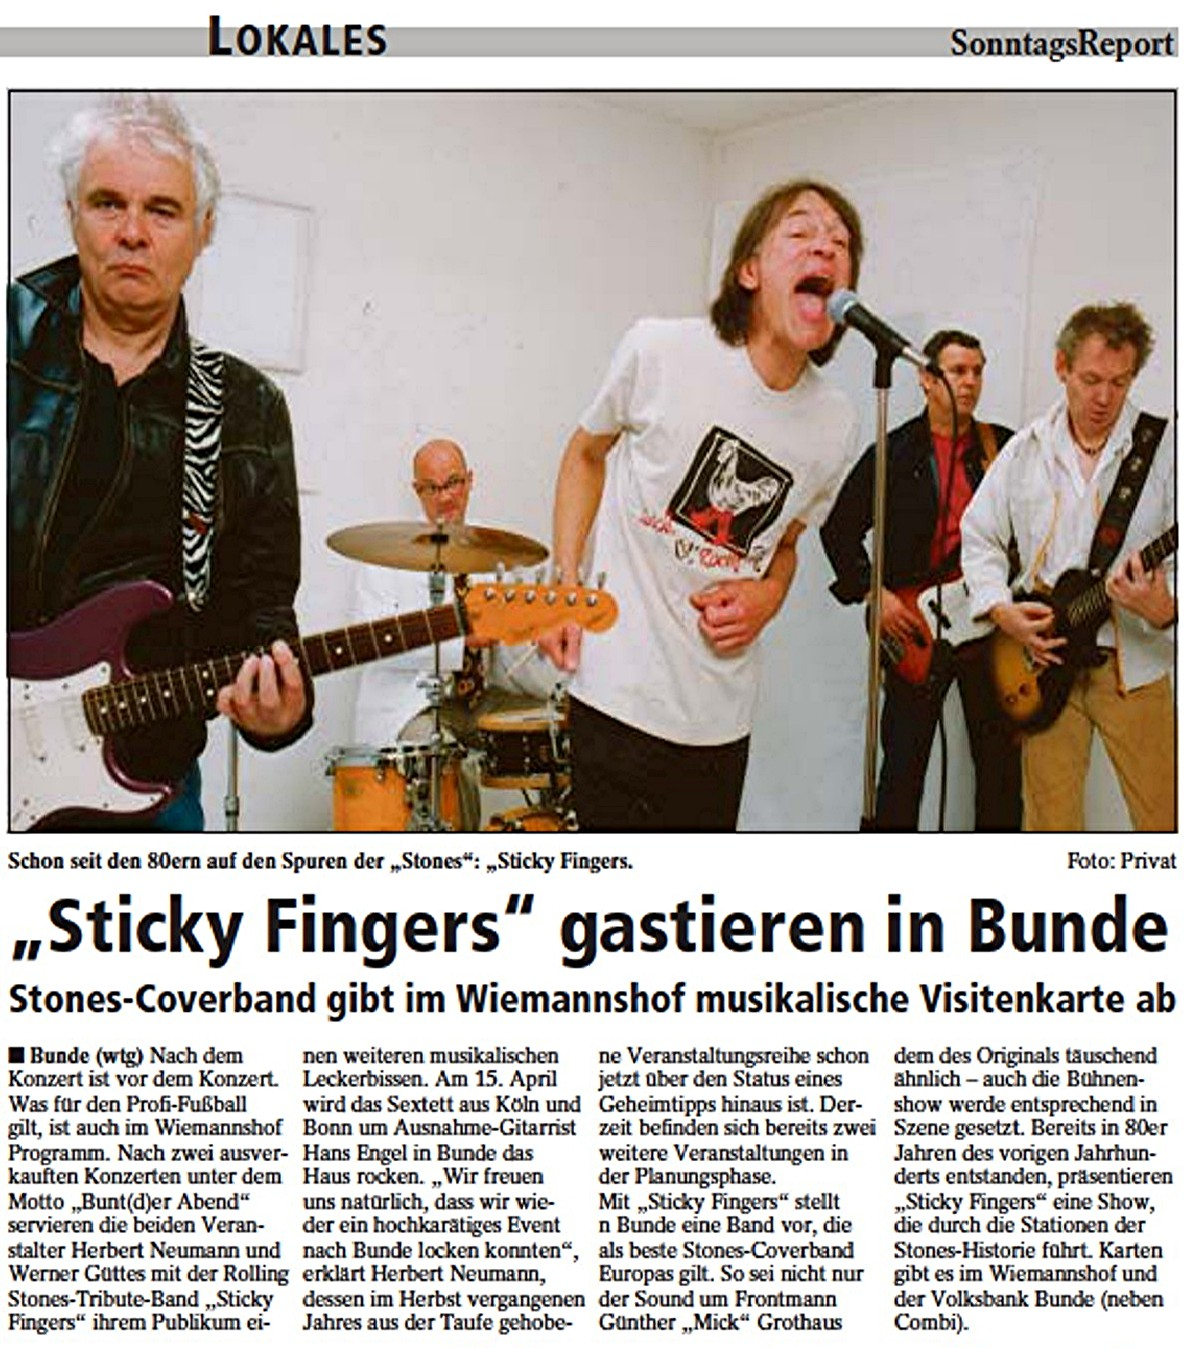 07 Sonntags-Report  Sticky Fingers 13.03.2011